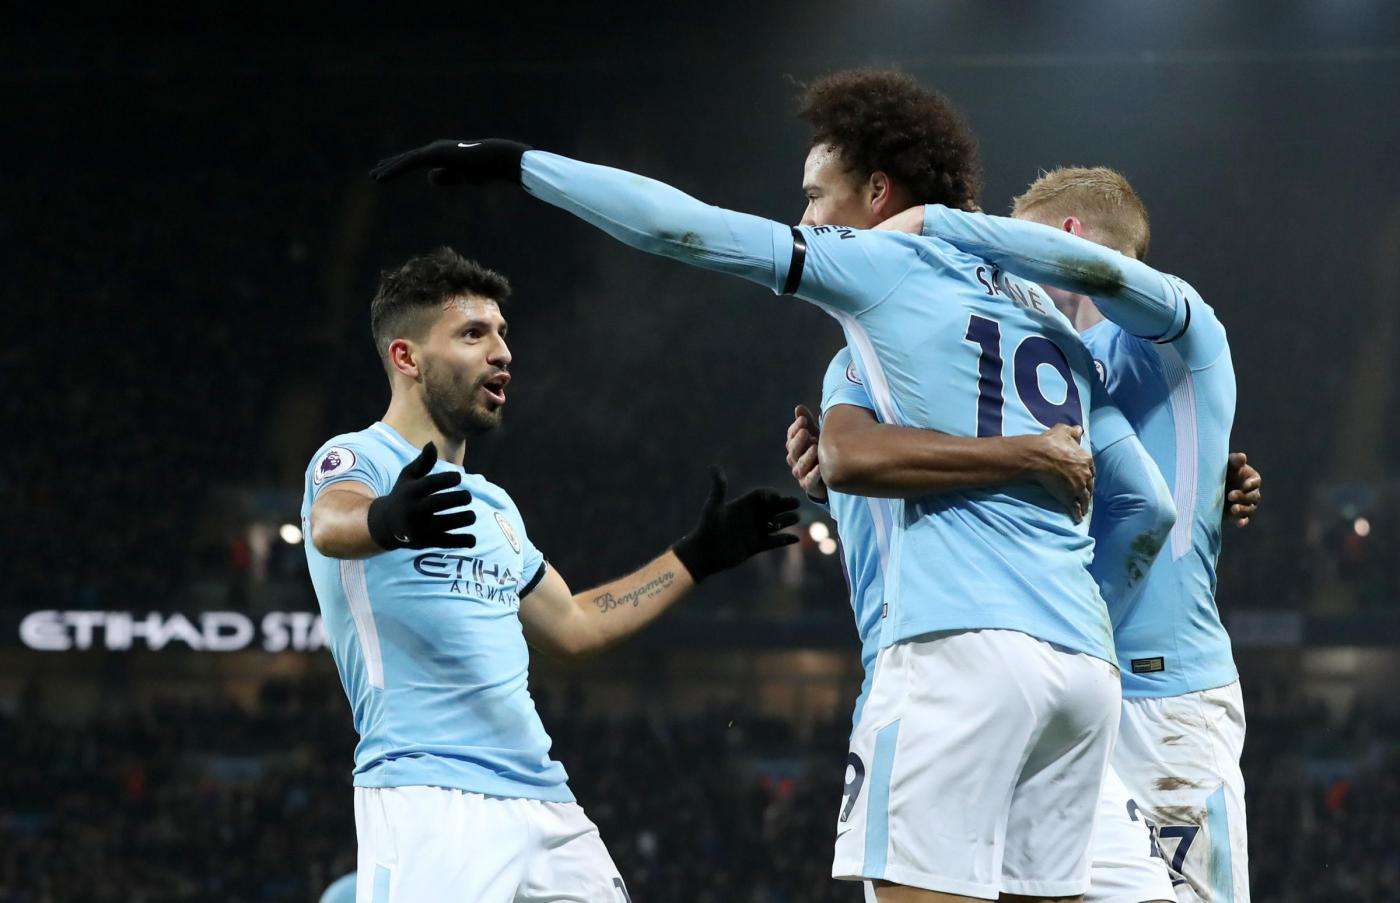 Stoke-Manchester City 12 marzo, analisi e pronostico Premier League giornata 30